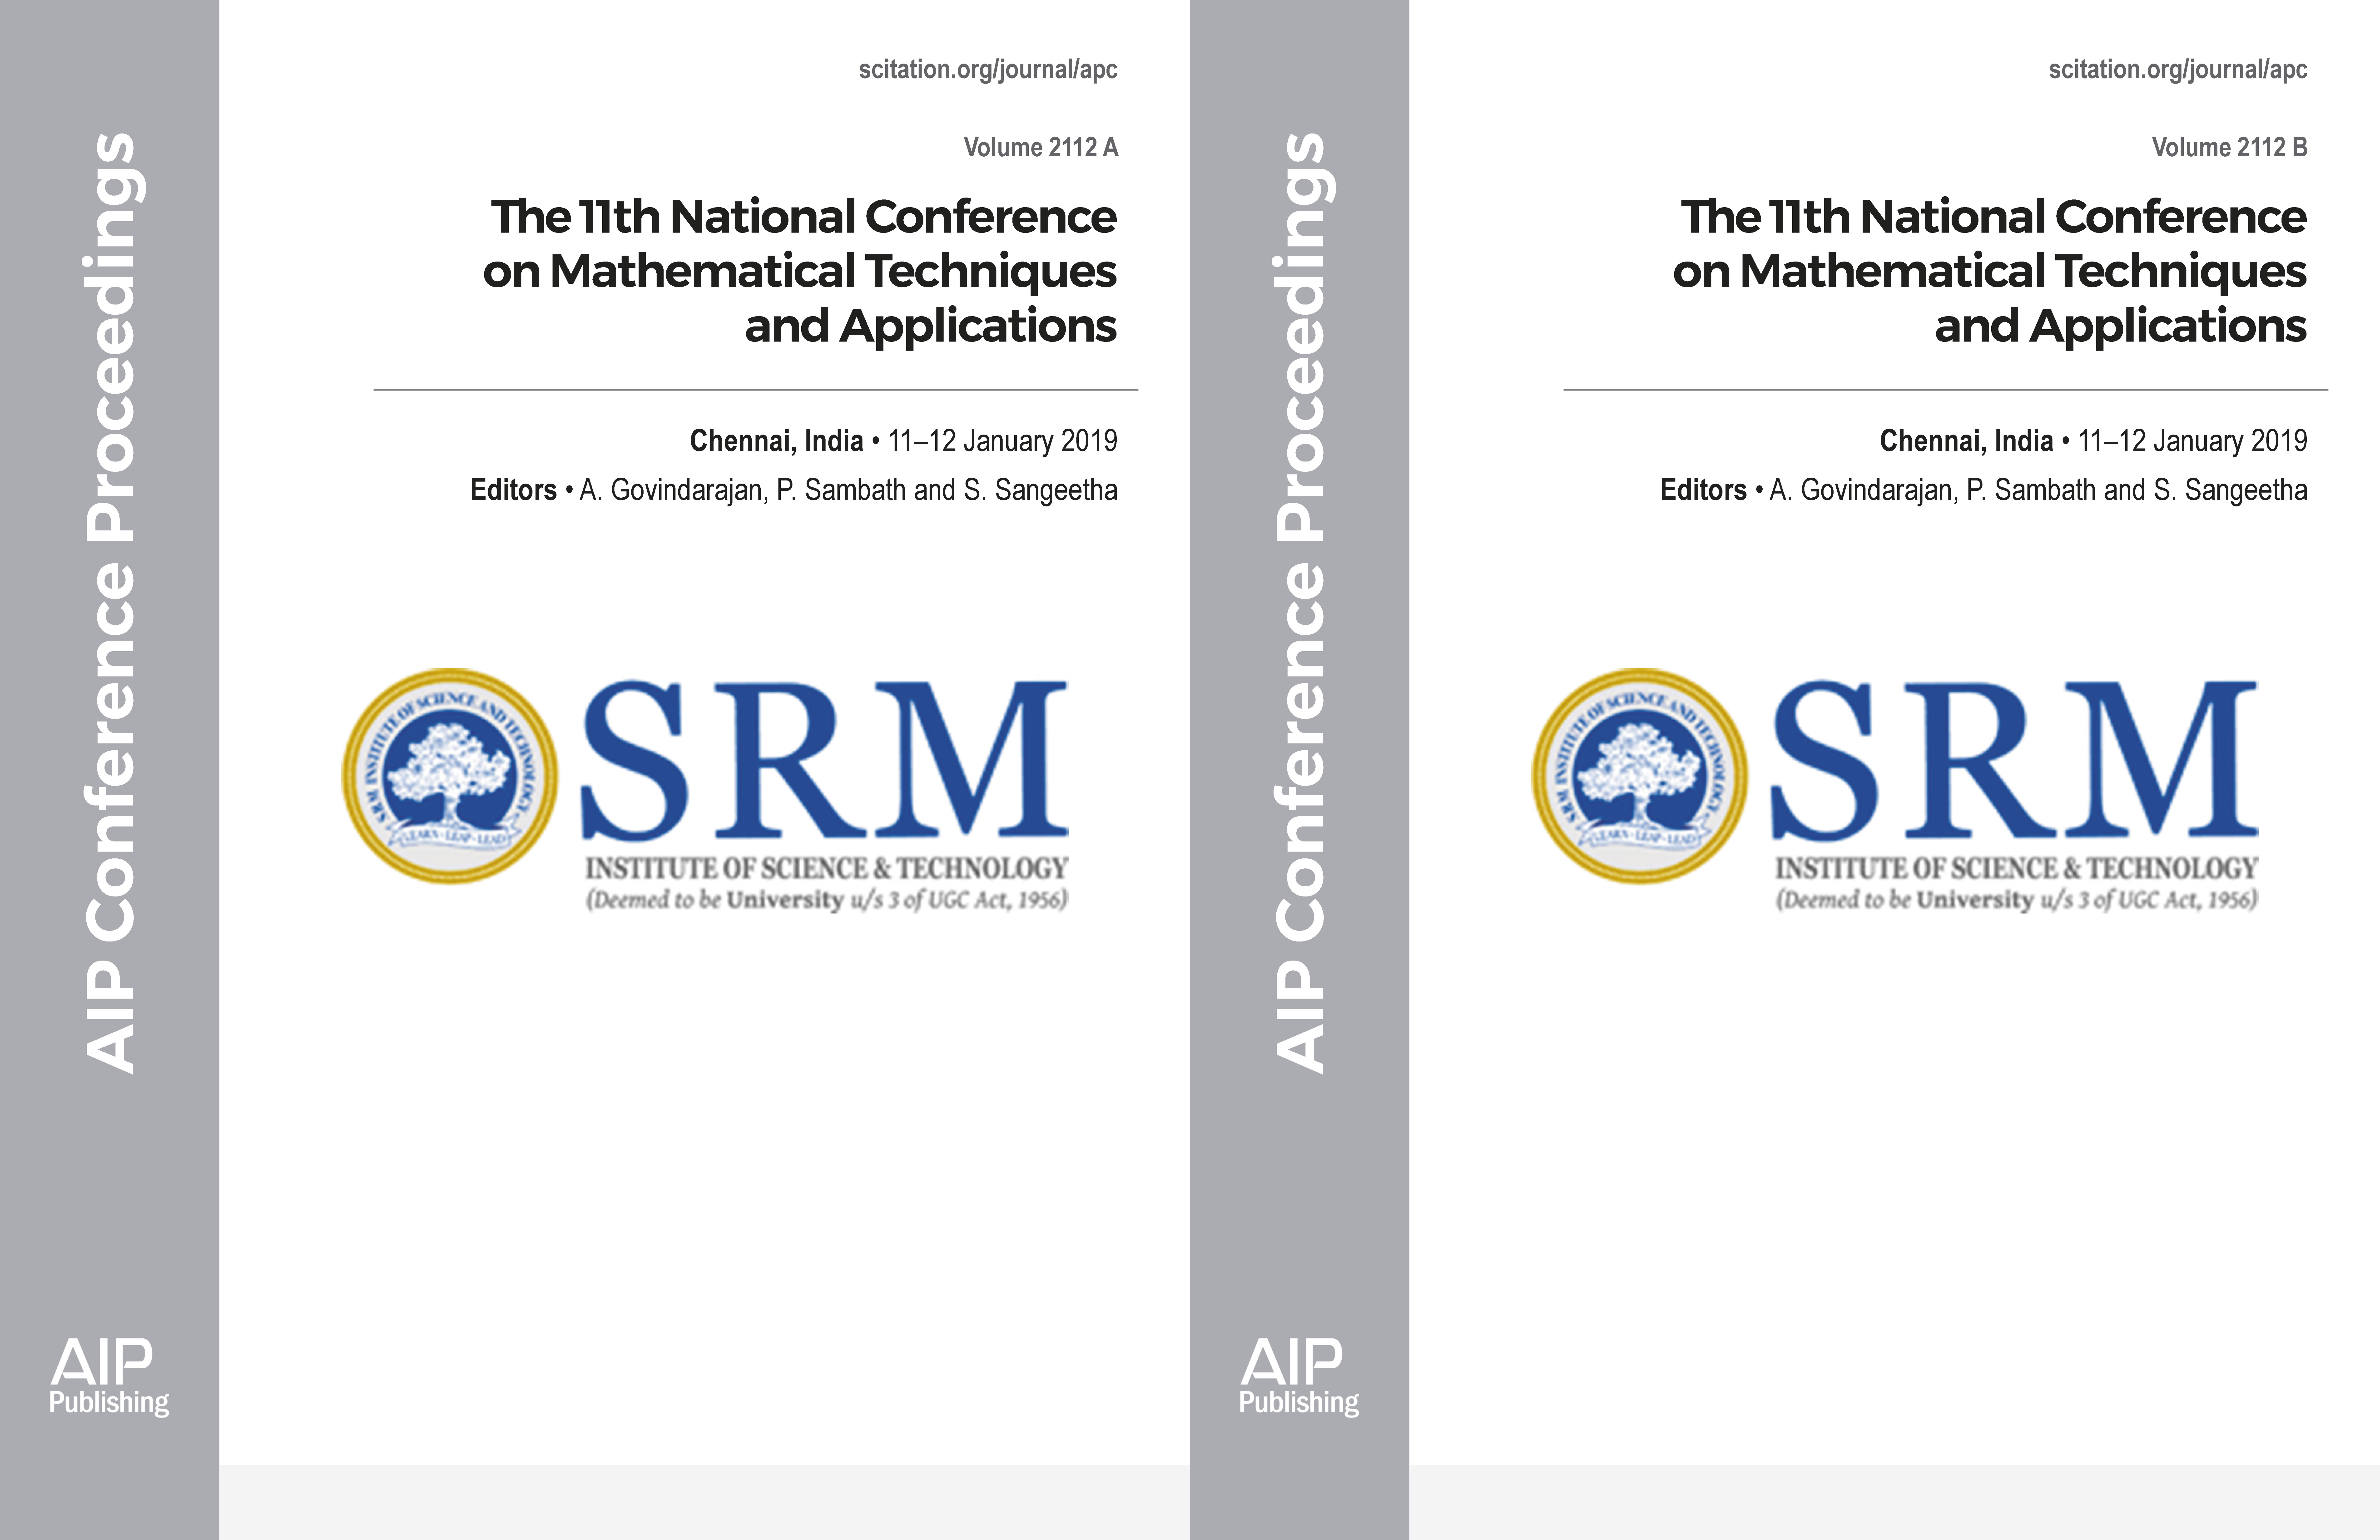 Volume 2112: The 11th National Conference on Mathematical